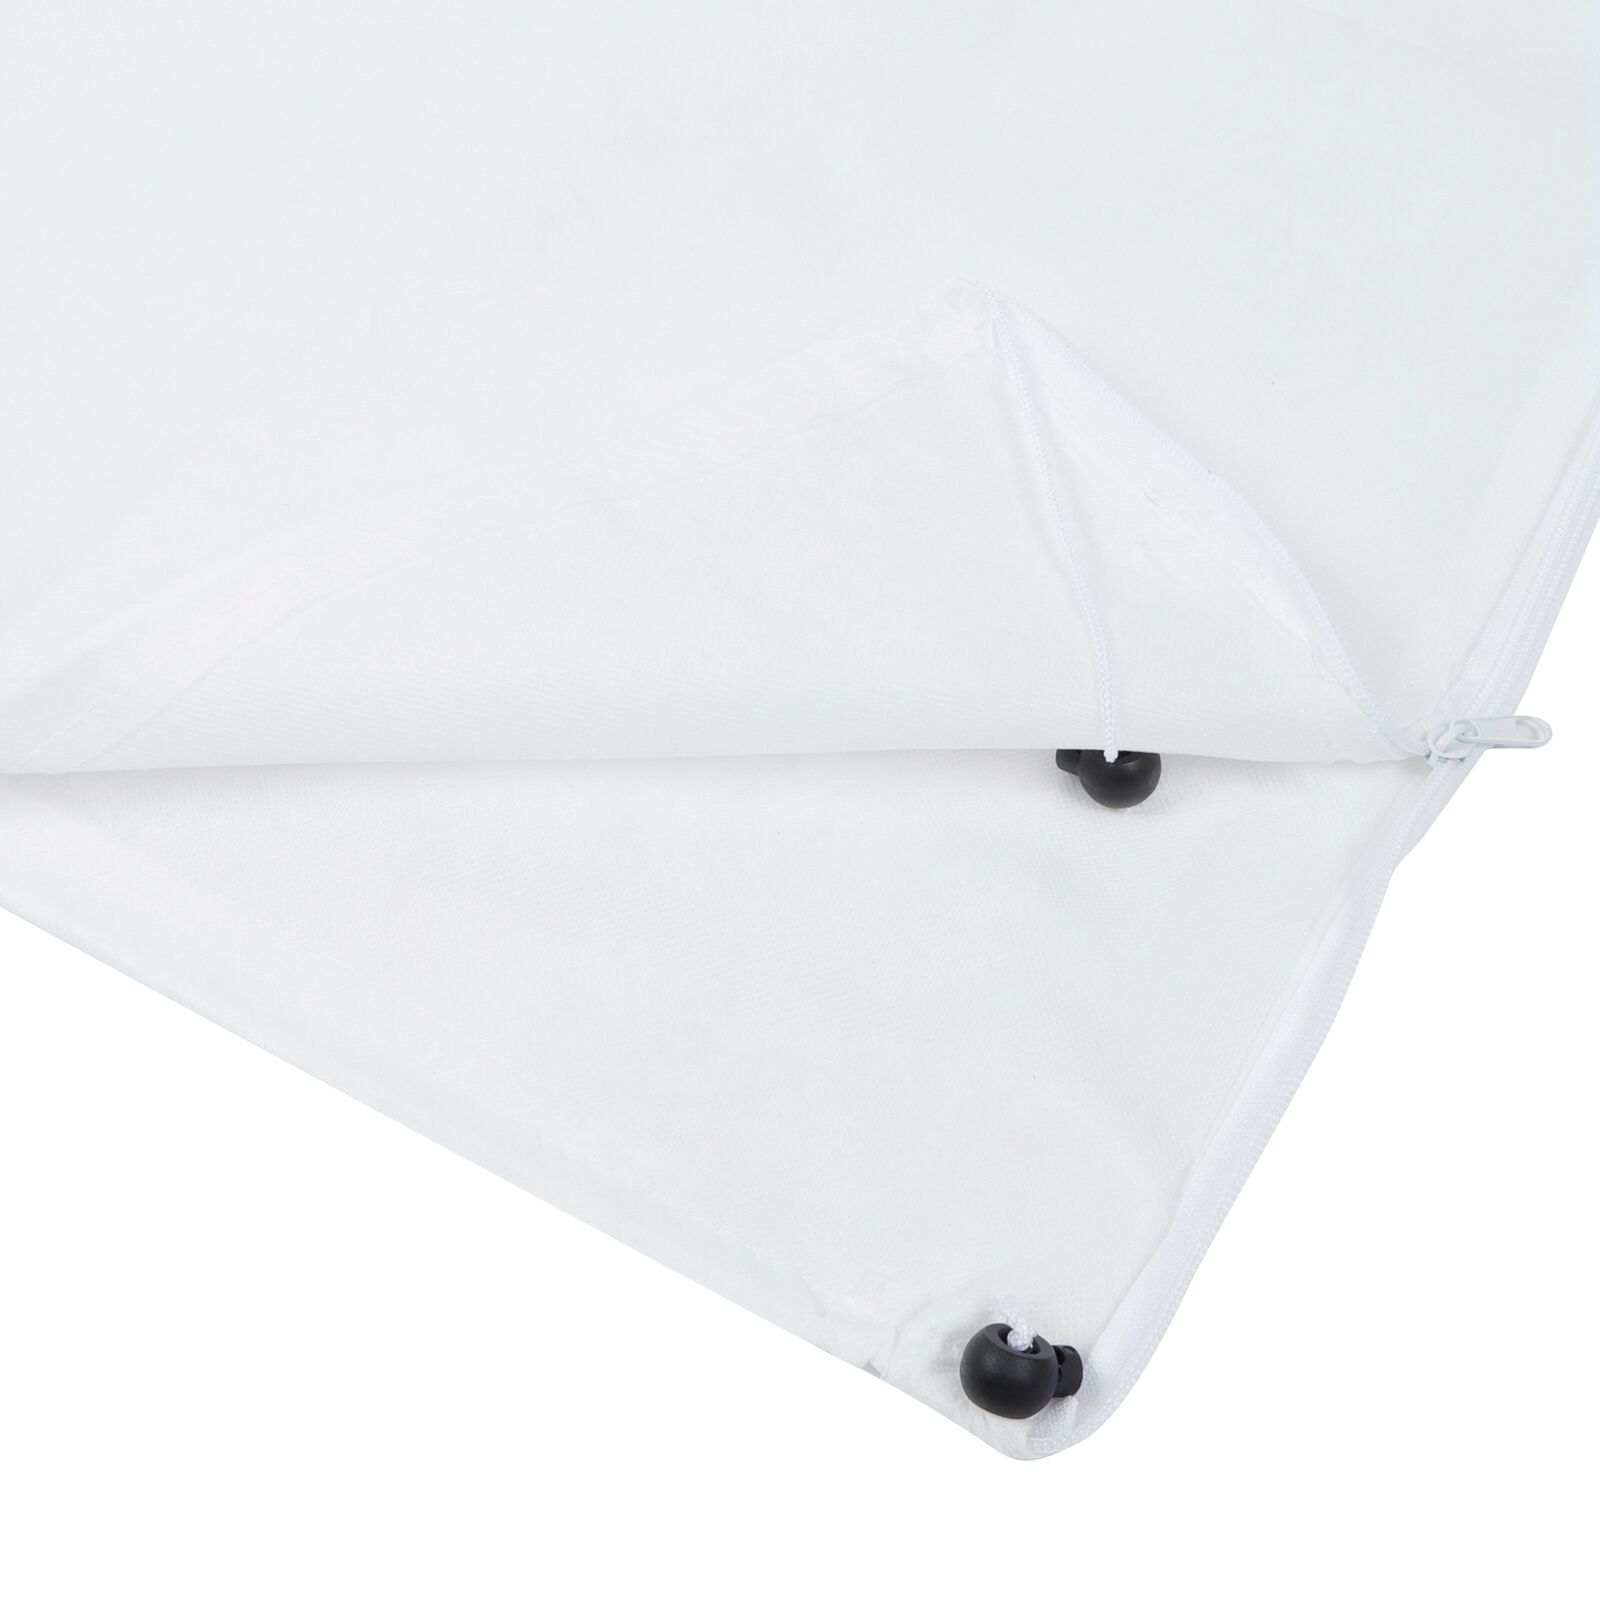 1.2x1.8m Outdoor Garden Plant Covers Freeze Protection For Cold Practical